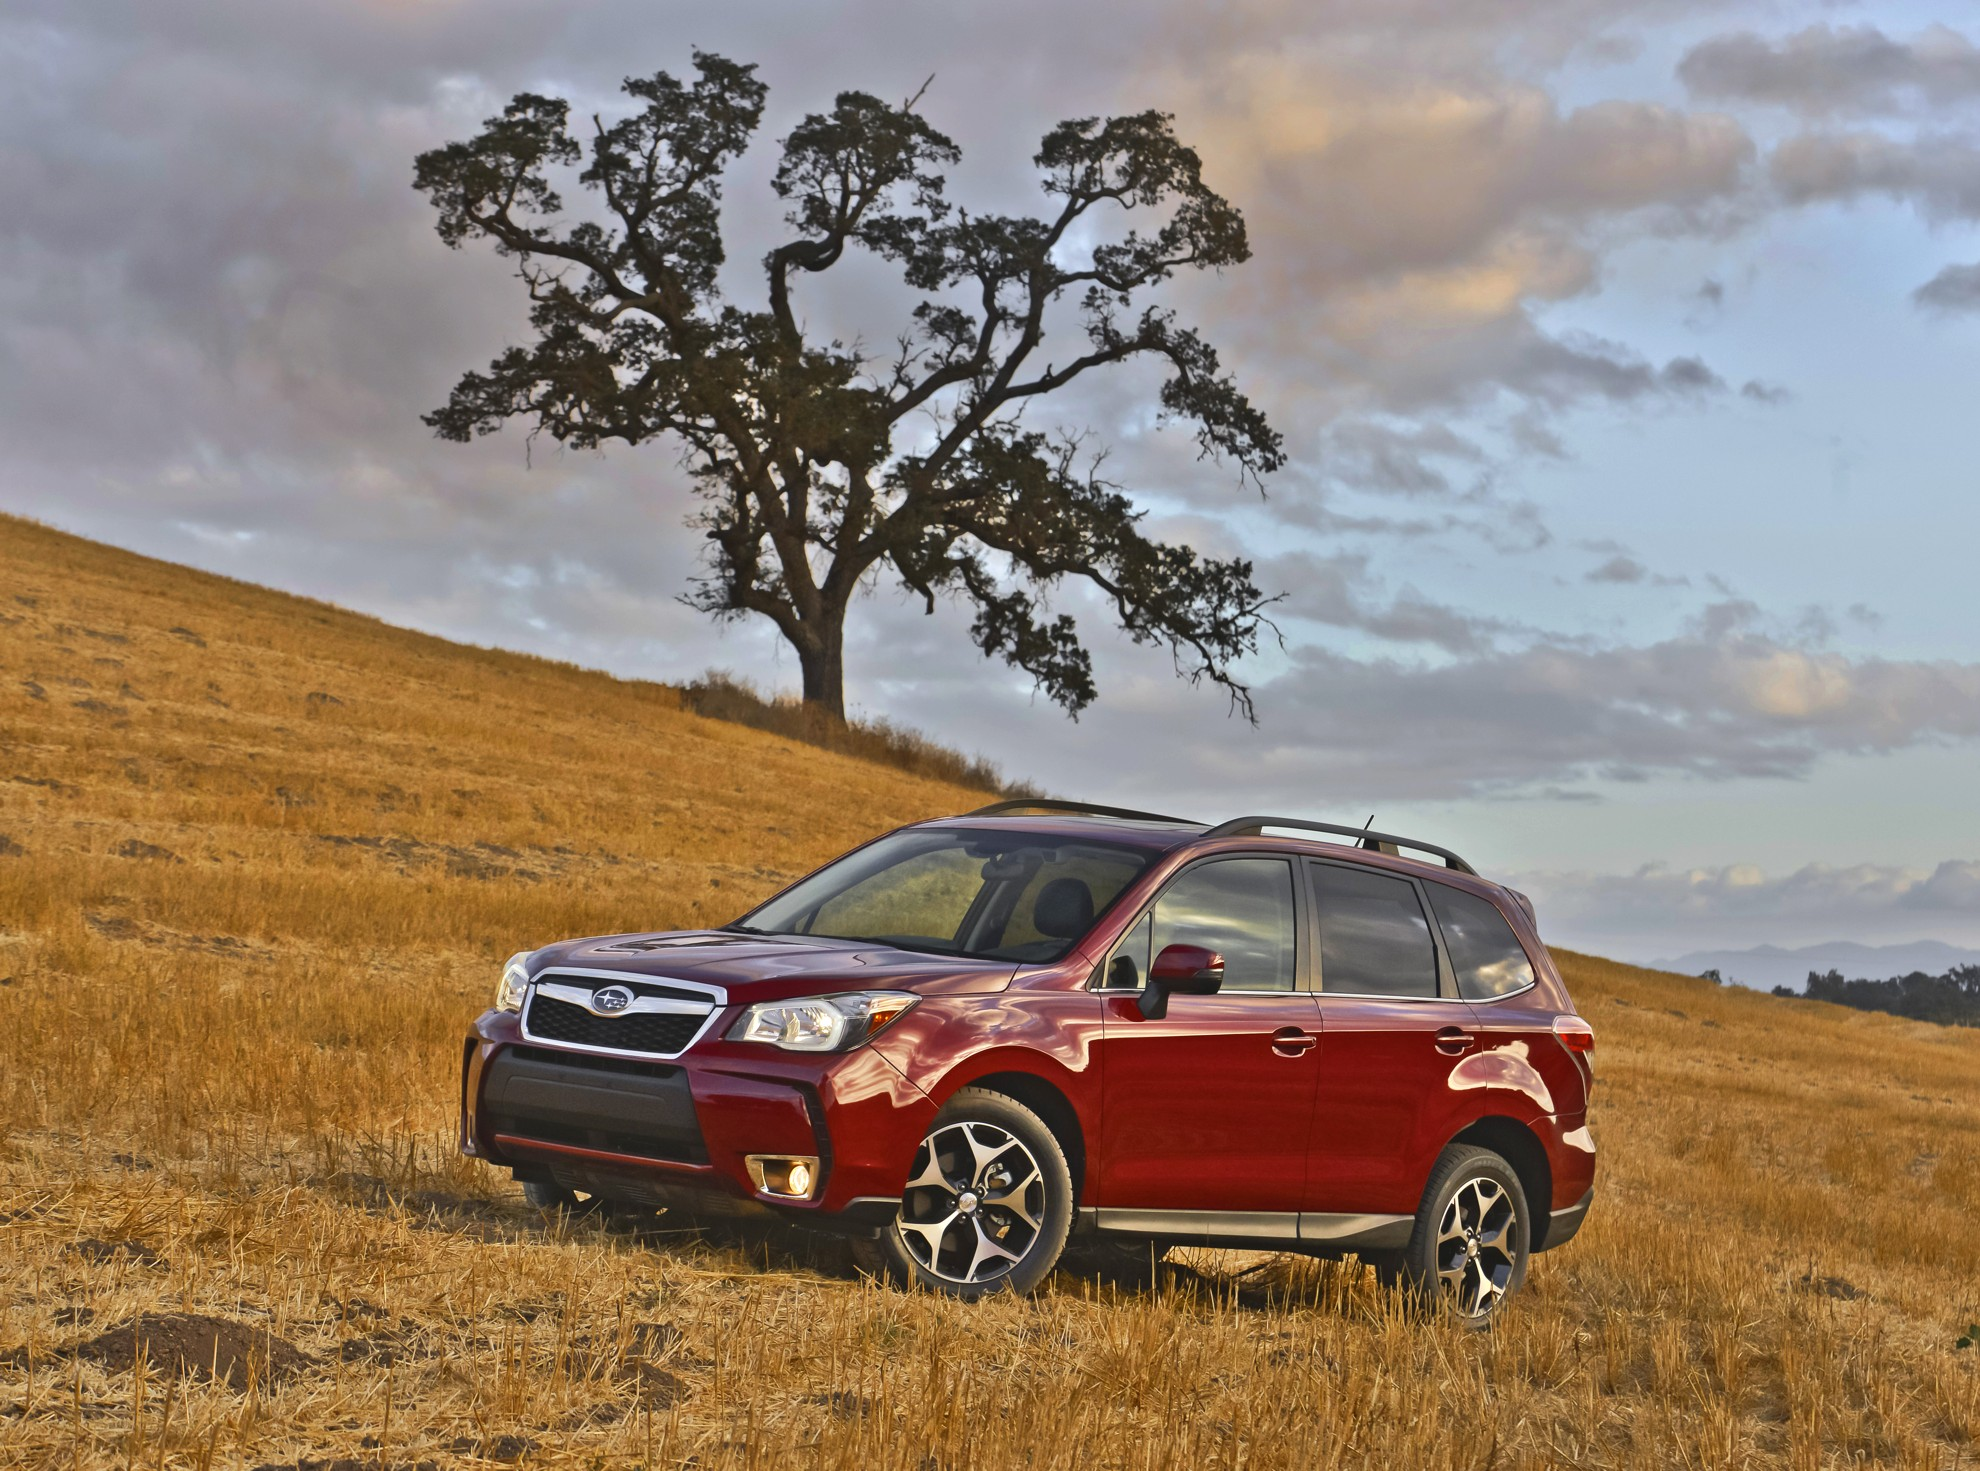 Cherry Hill Mercedes >> How much does a Subaru Forester Cost in the USA?